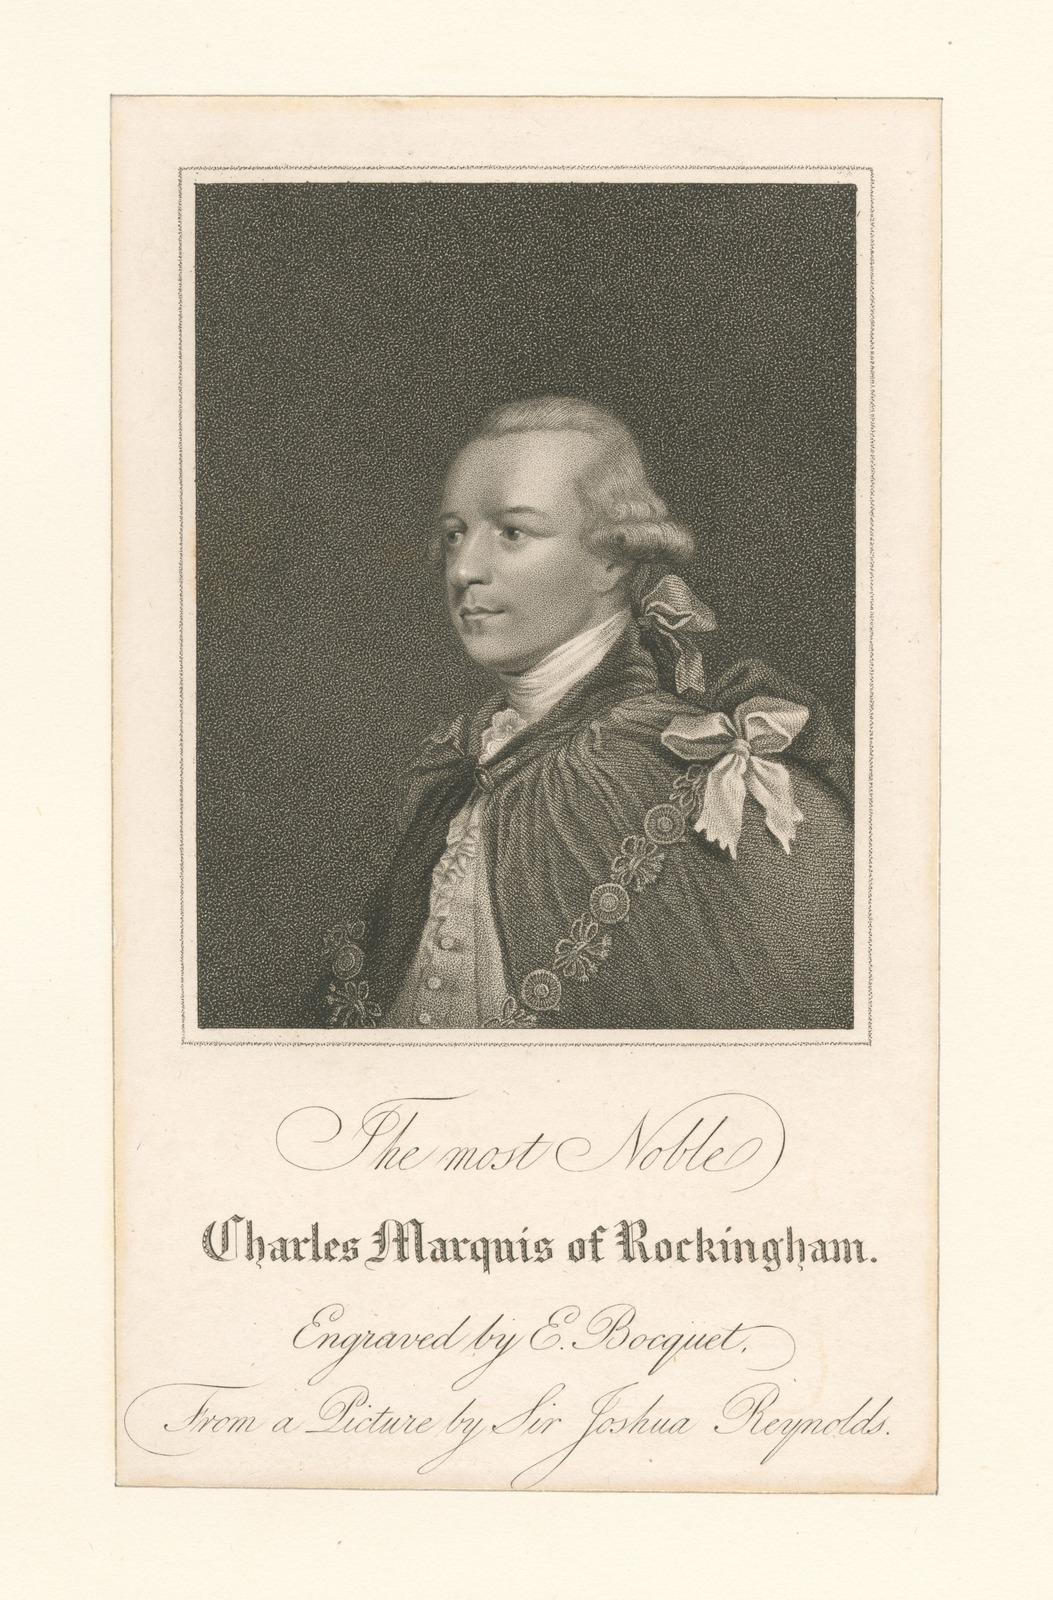 The most noble Charles Marquis of Rockingham.